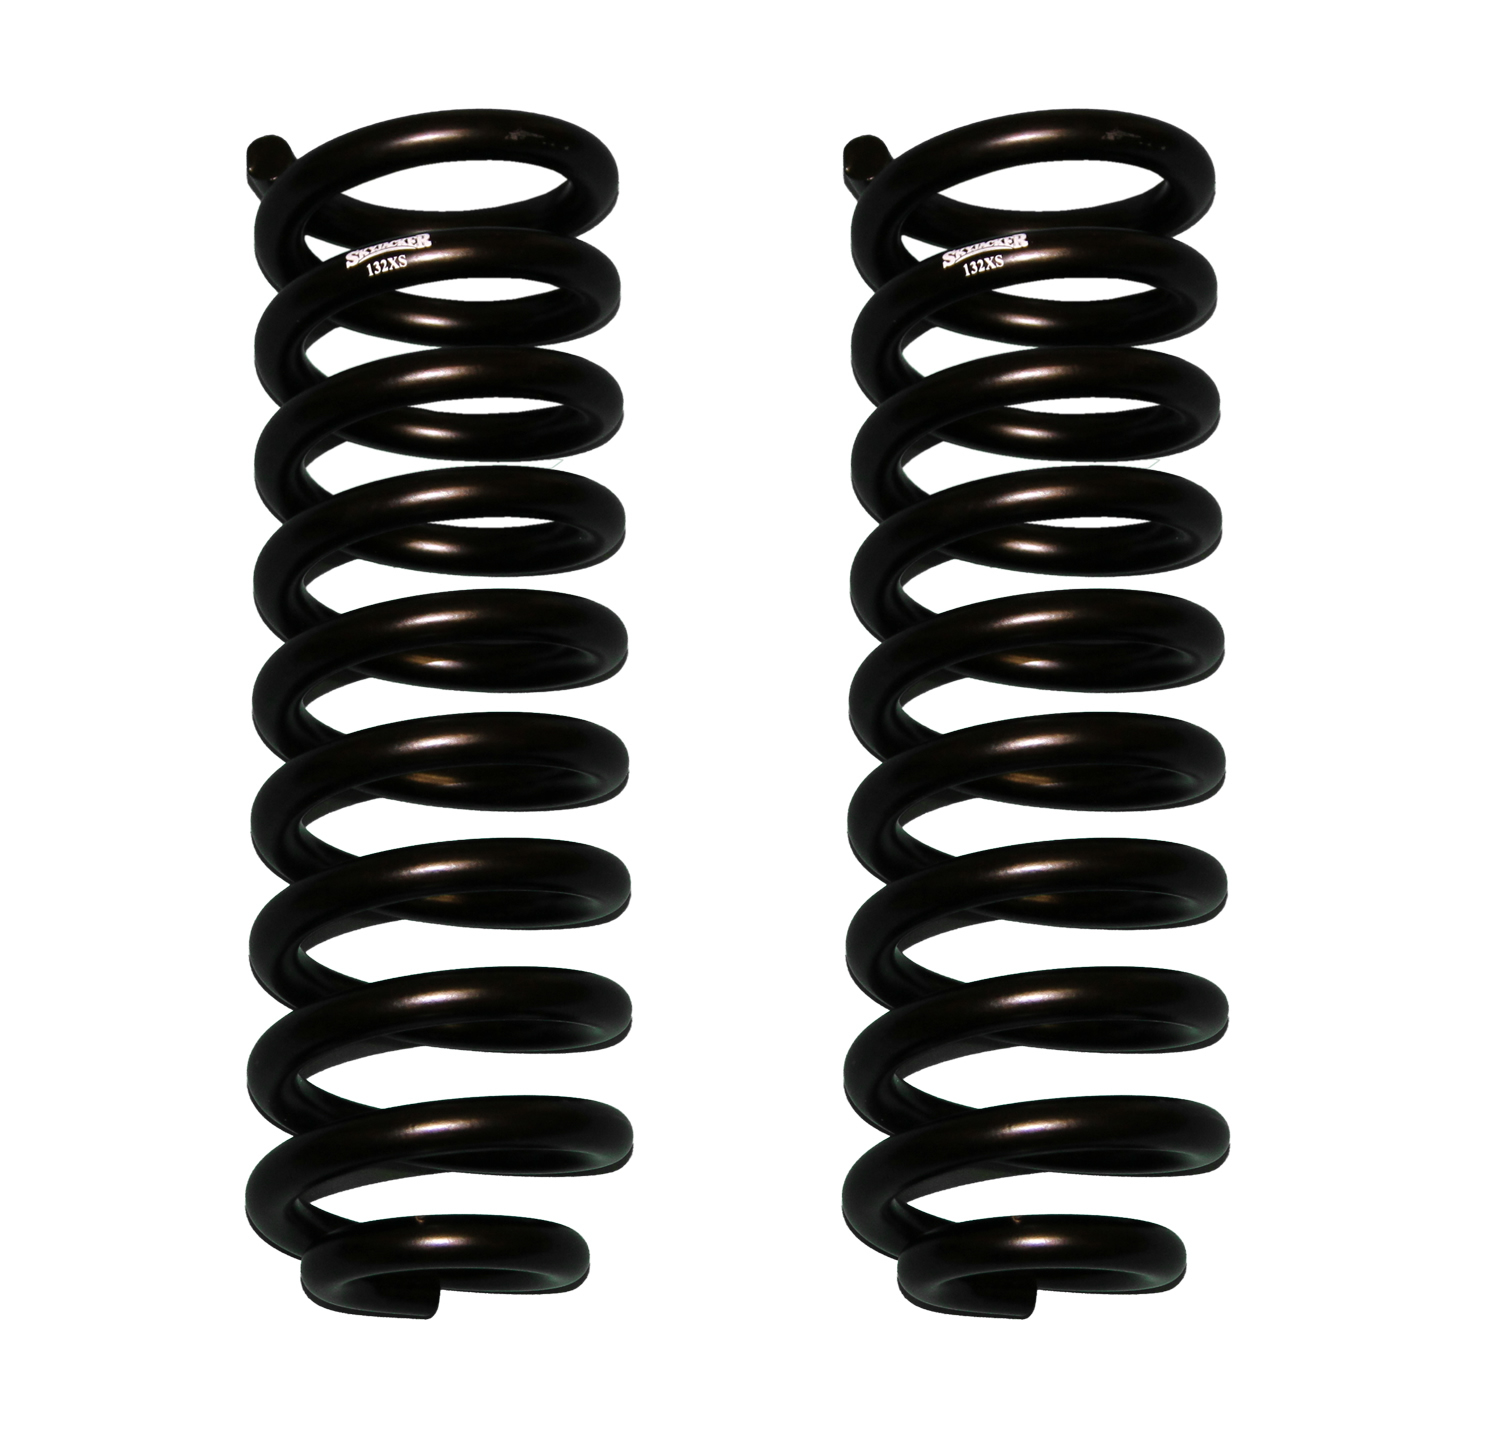 Coil Spring - 014 639 0003